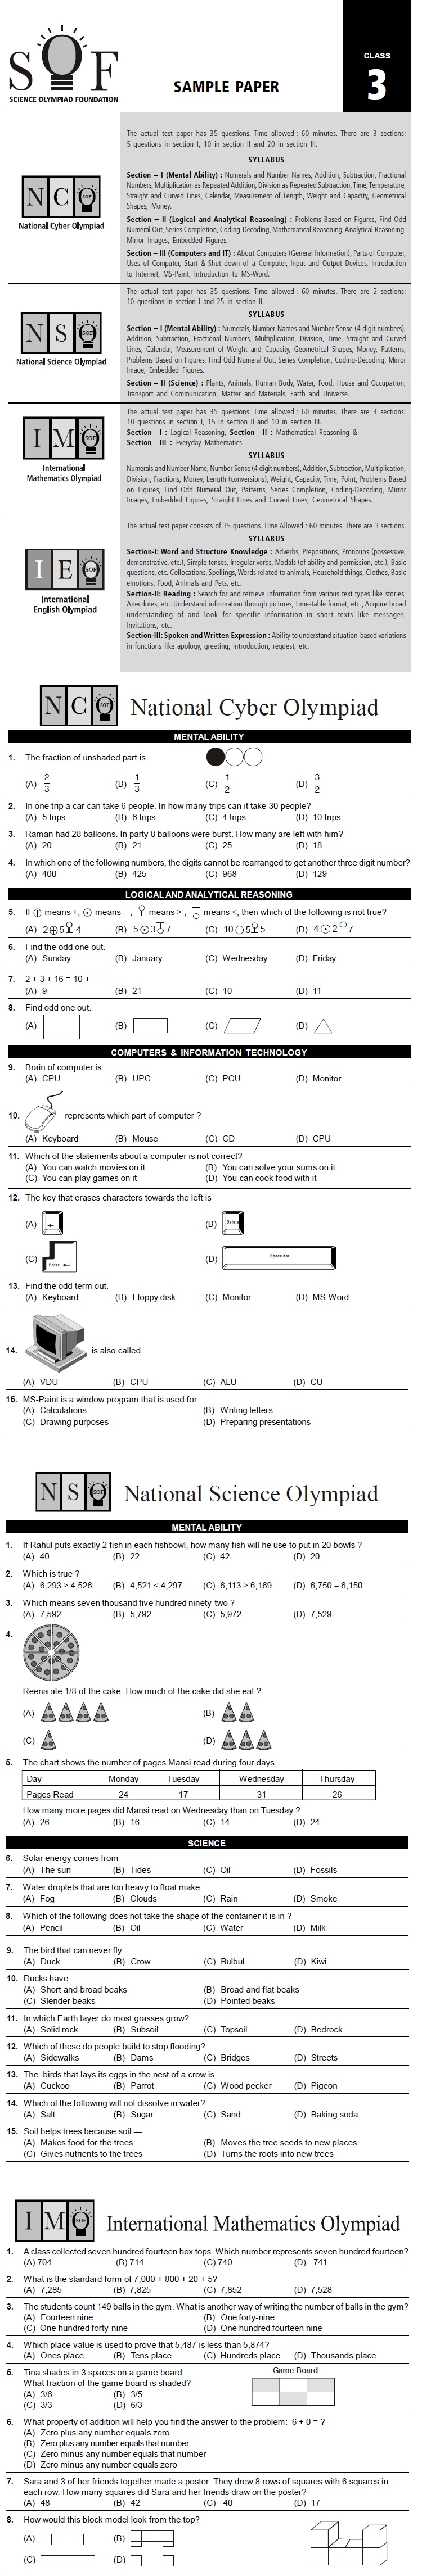 NCO, NSO, IMO & IEO Class 3 Sample Papers